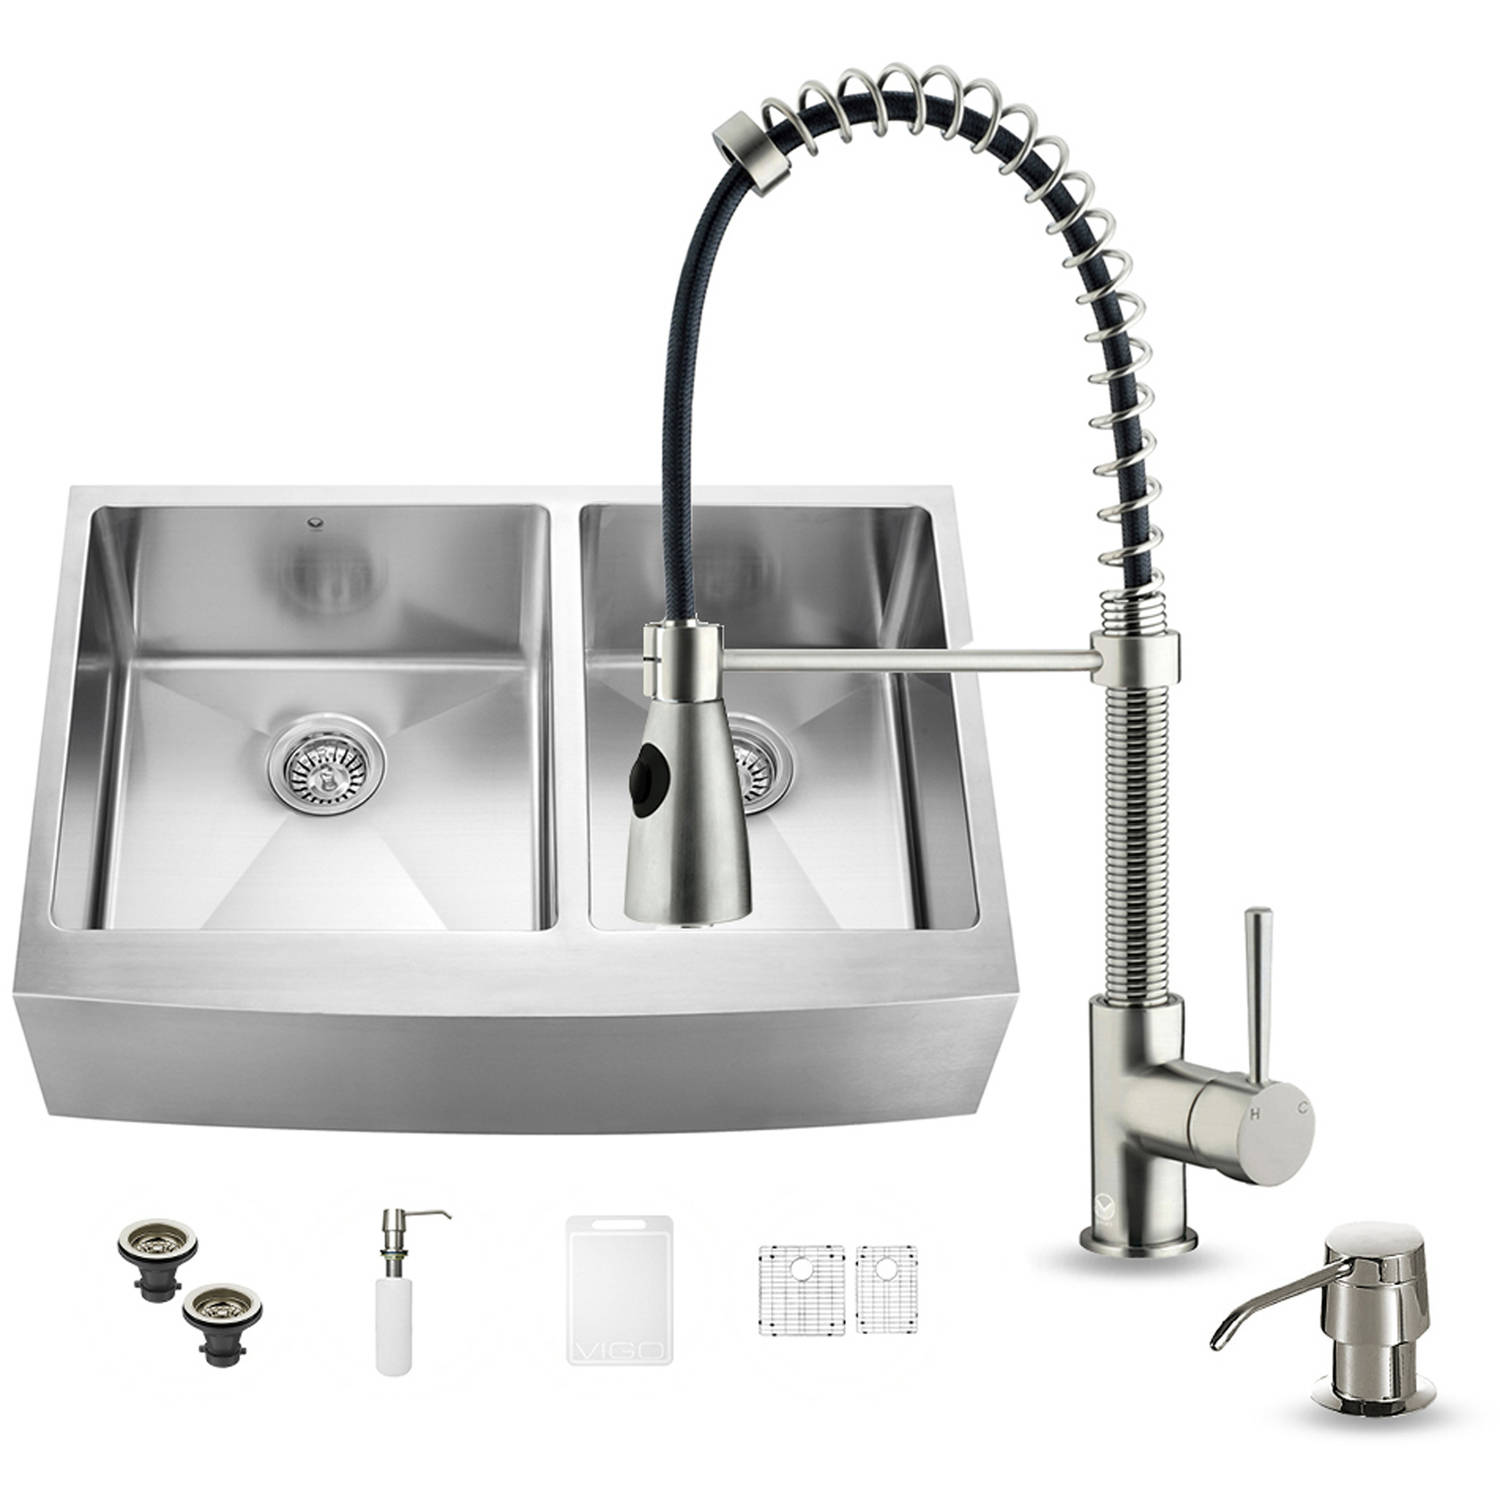 "Vigo All-in-One 33"" Farmhouse Stainless Steel Double Bowl Kitchen Sink and Faucet Set"